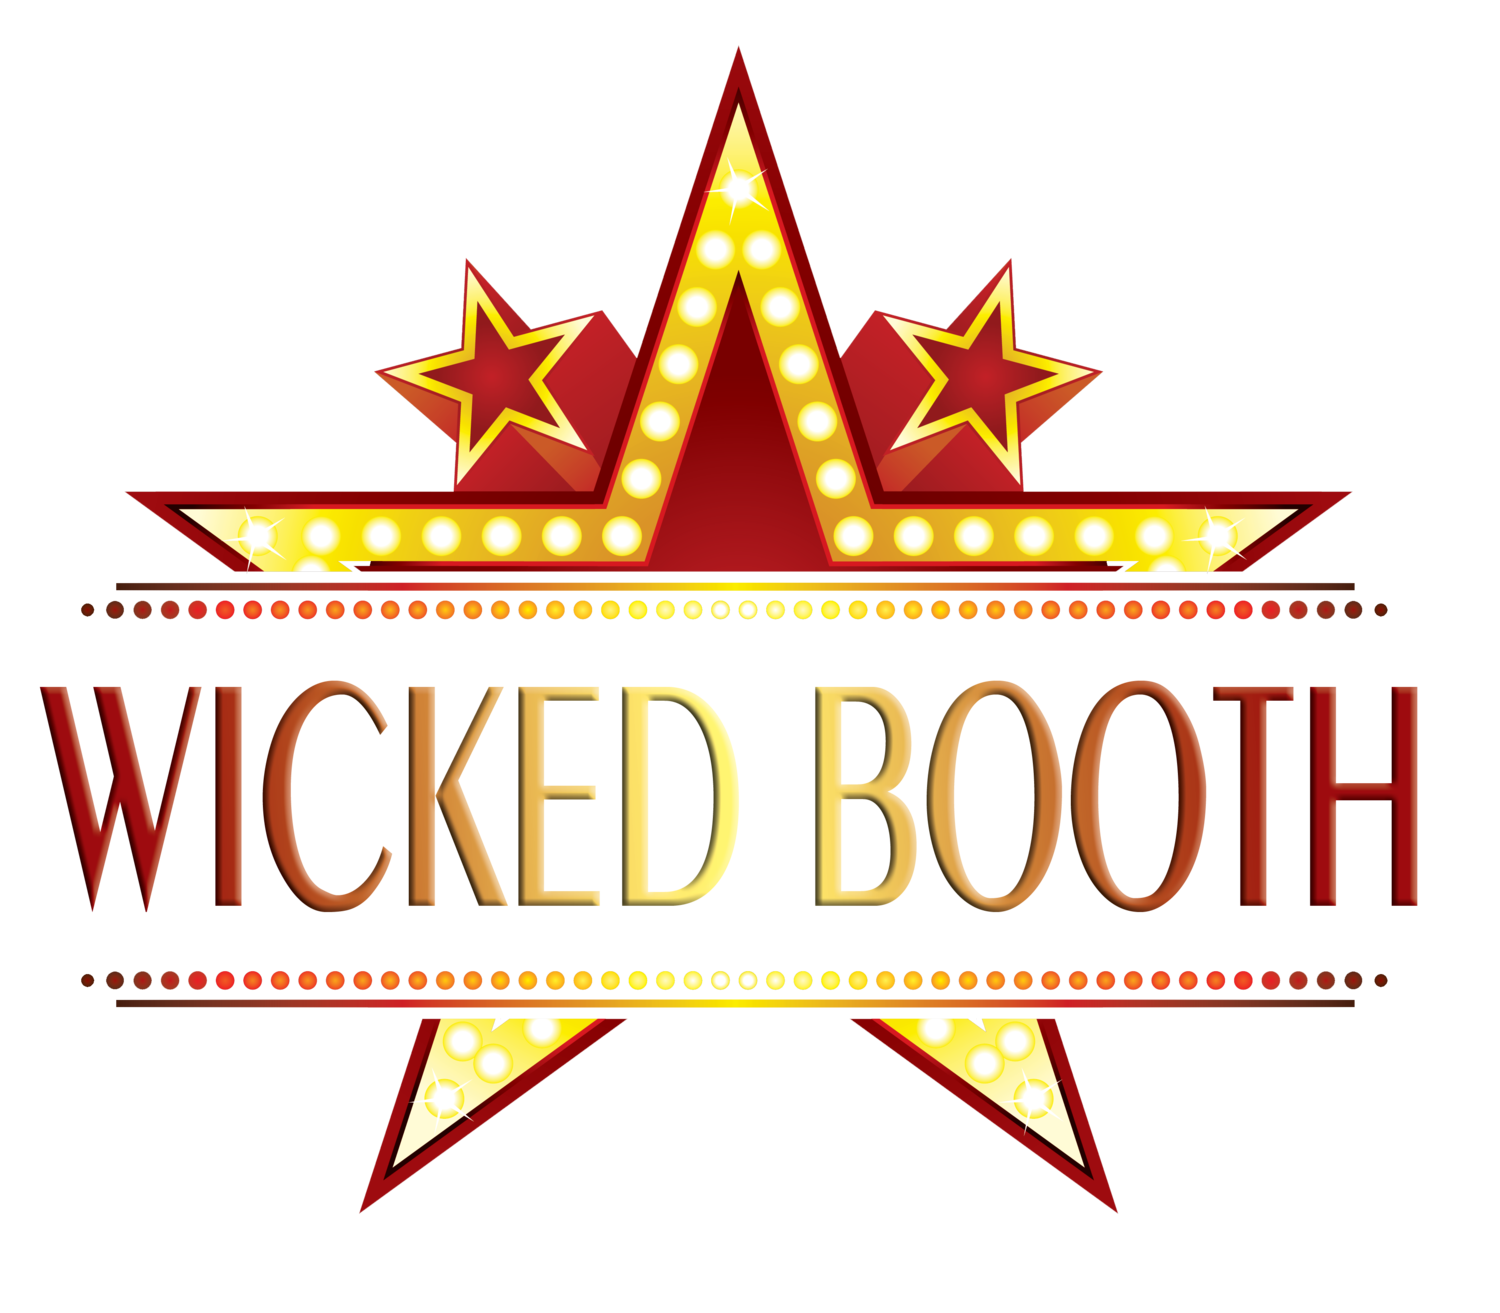 Wicked Booth